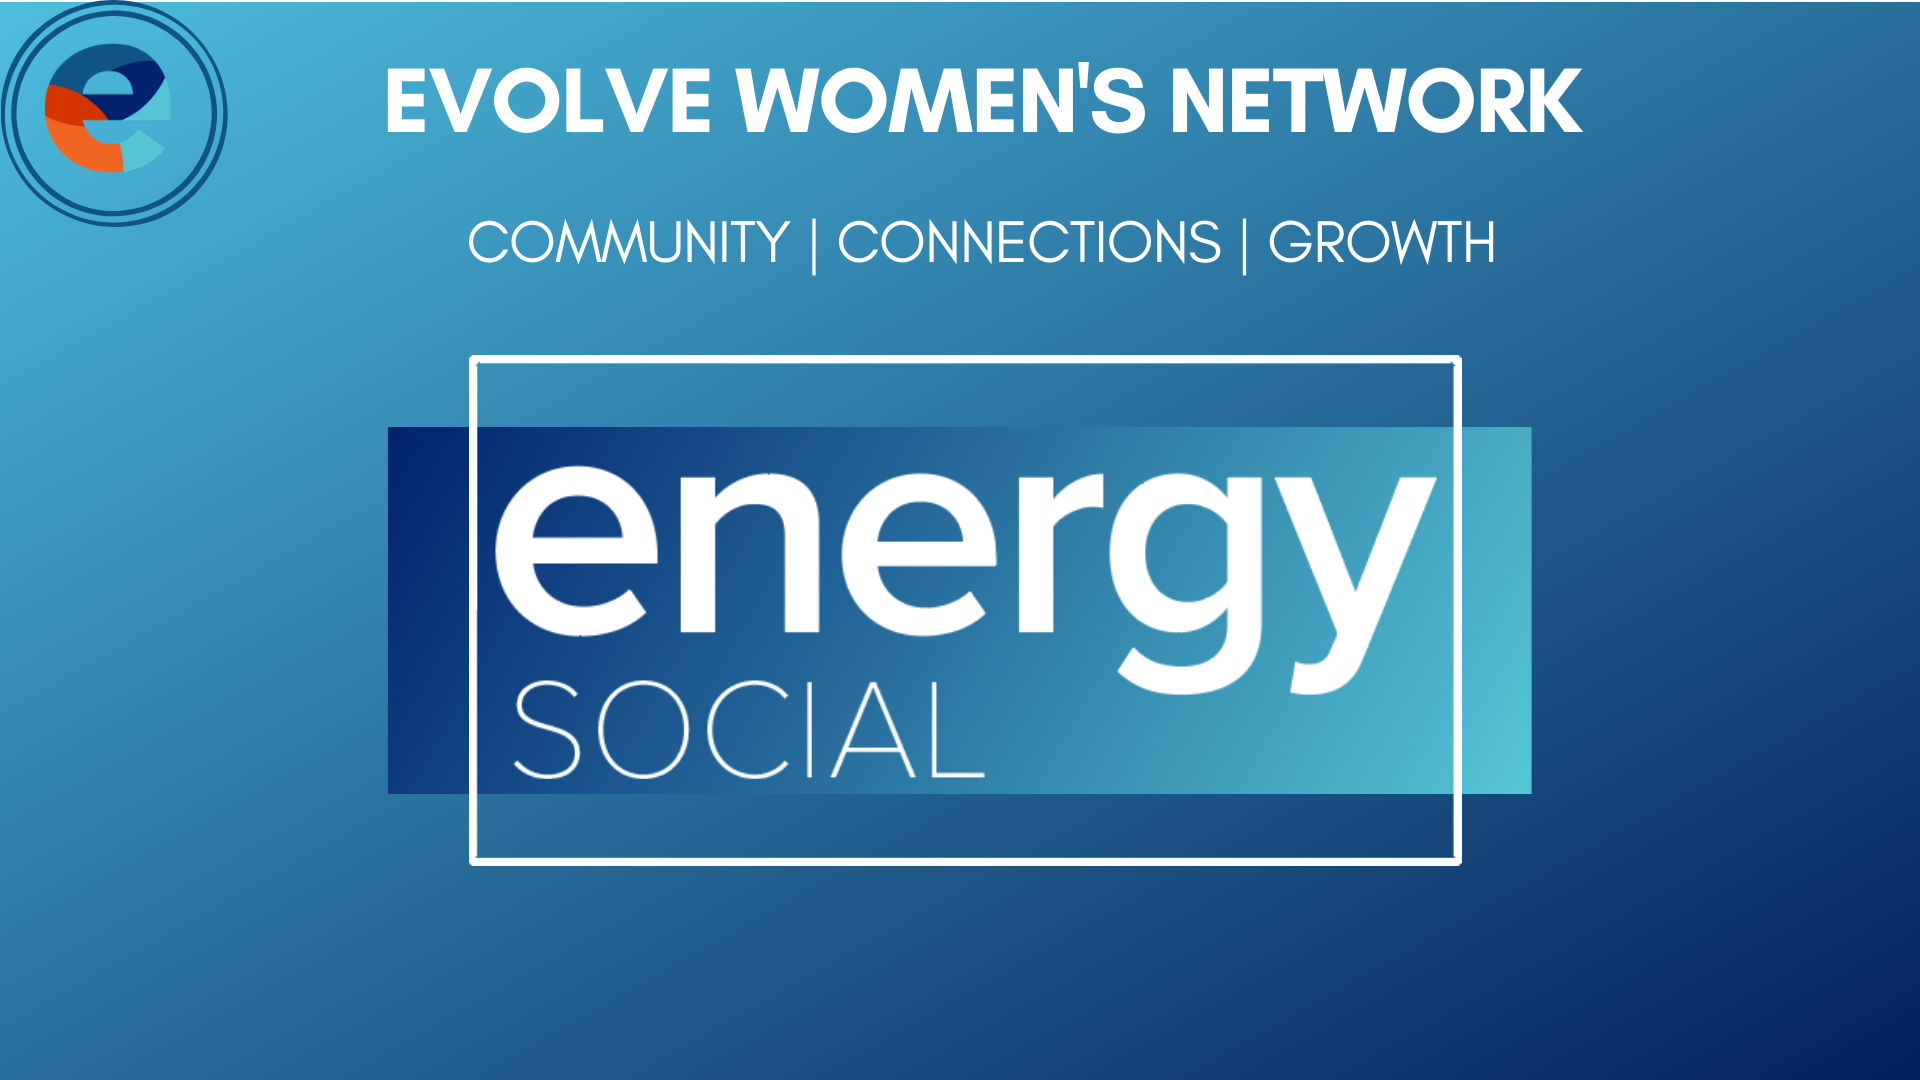 Evolve Women's Energy! Social: Indianapolis, IN (In-Person)